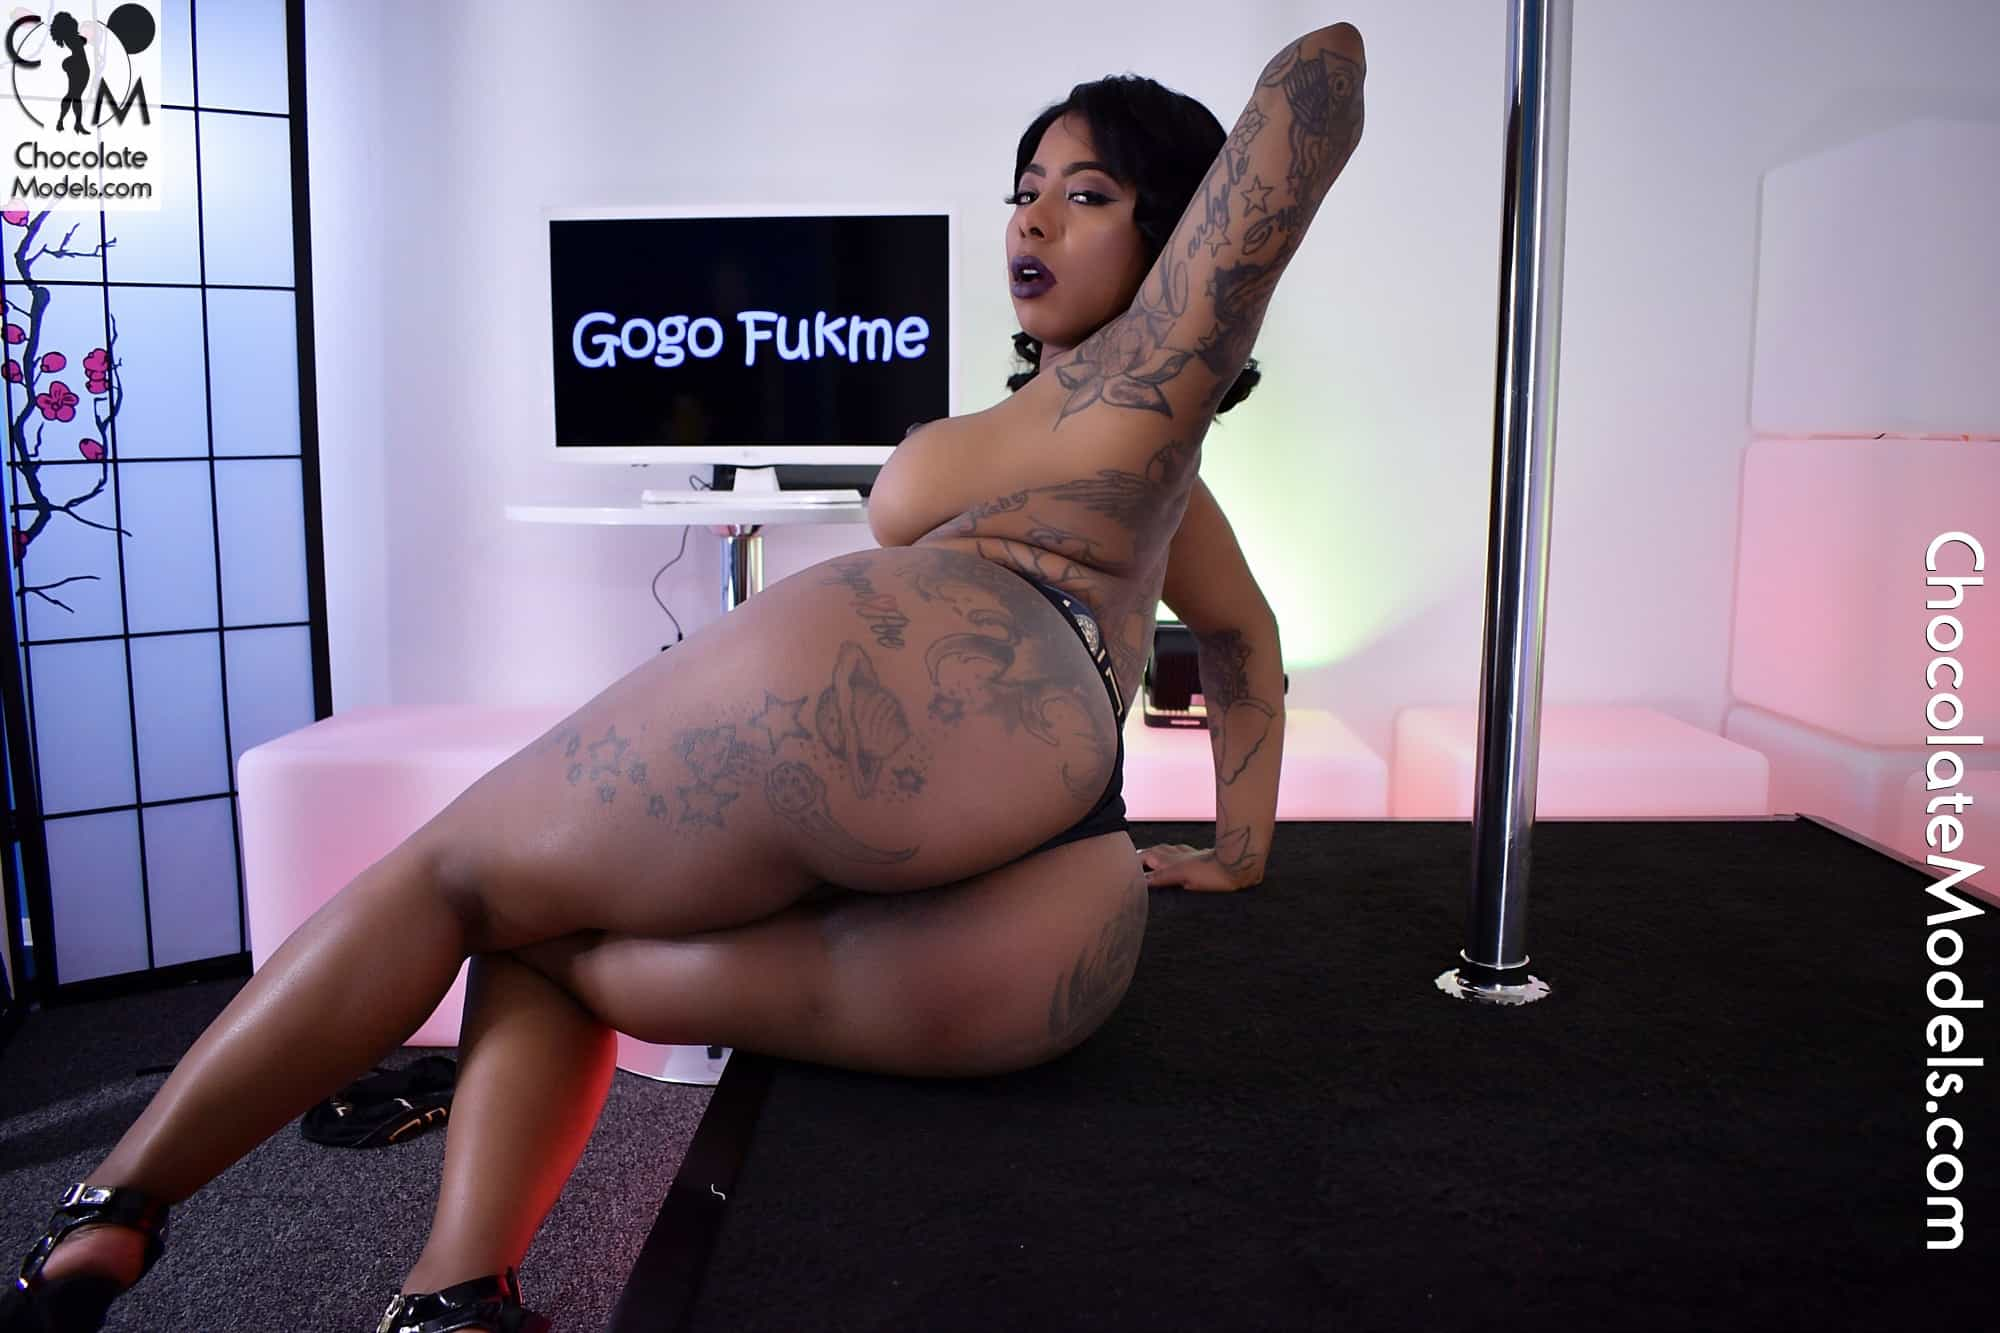 Gogo Fukme Photos Uploaded By Our Users